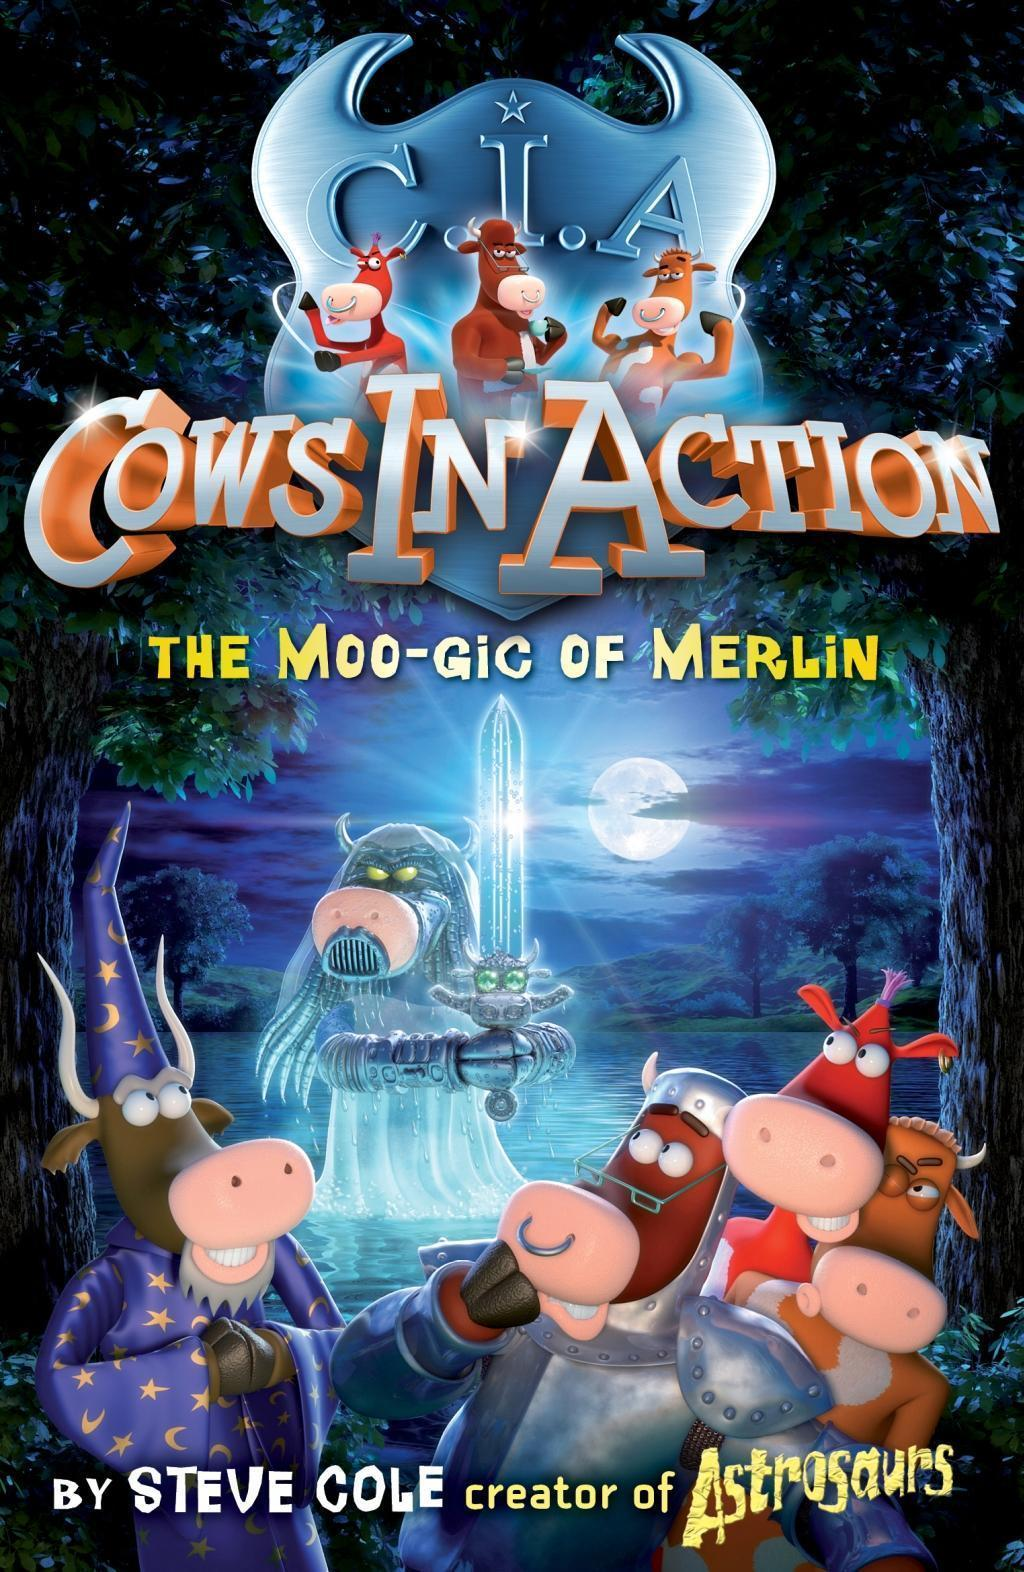 Cows In Action 8: The Moo-gic of Merlin